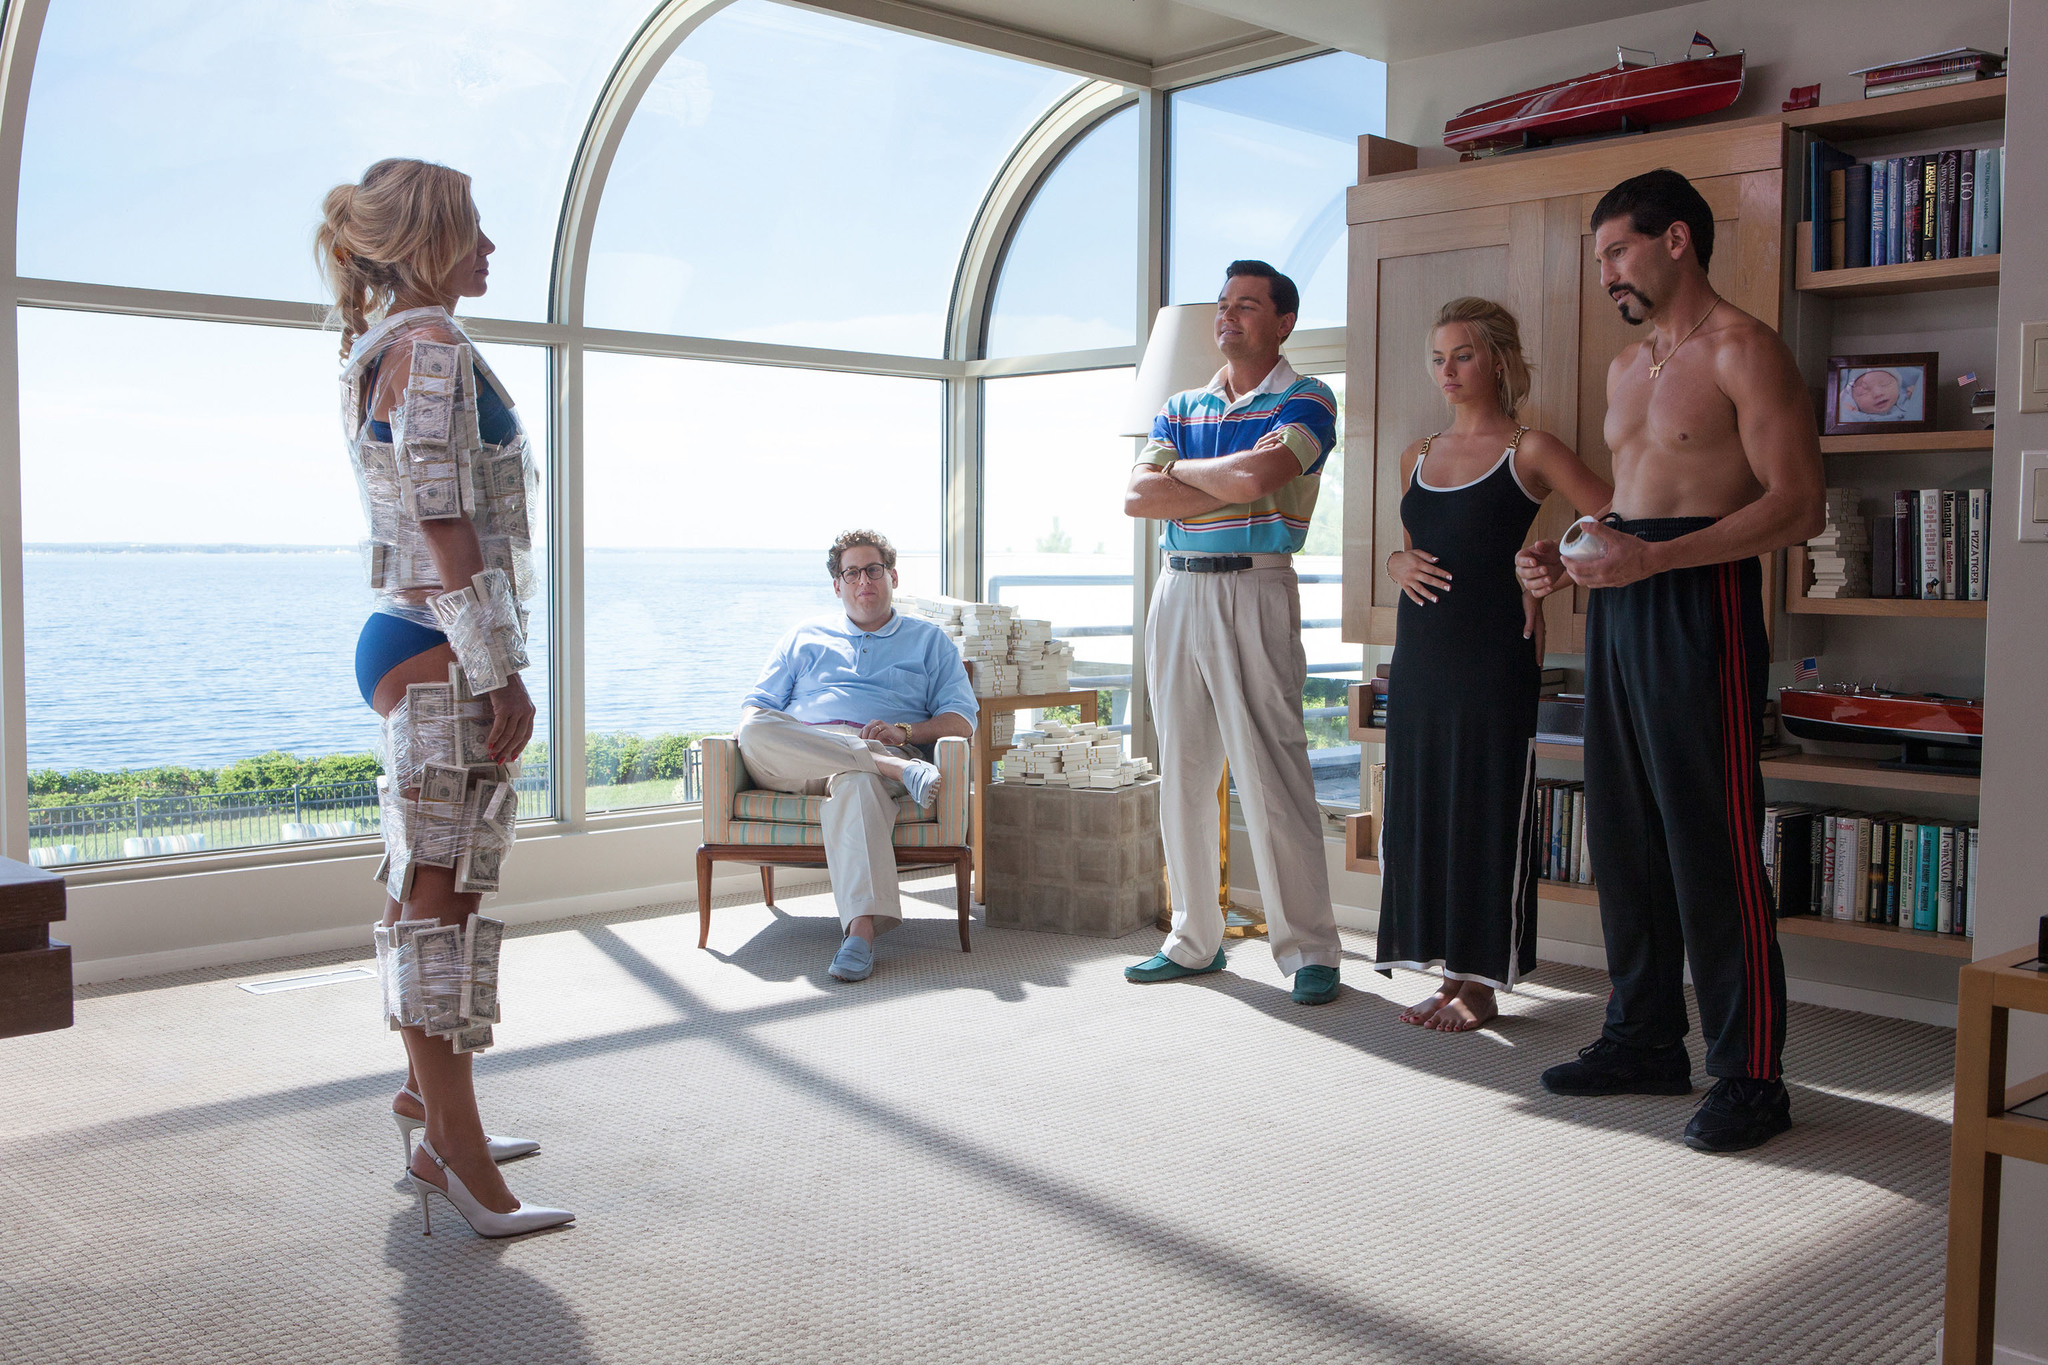 Dicaprio margot robbie and jon bernthal in the wolf of wall street